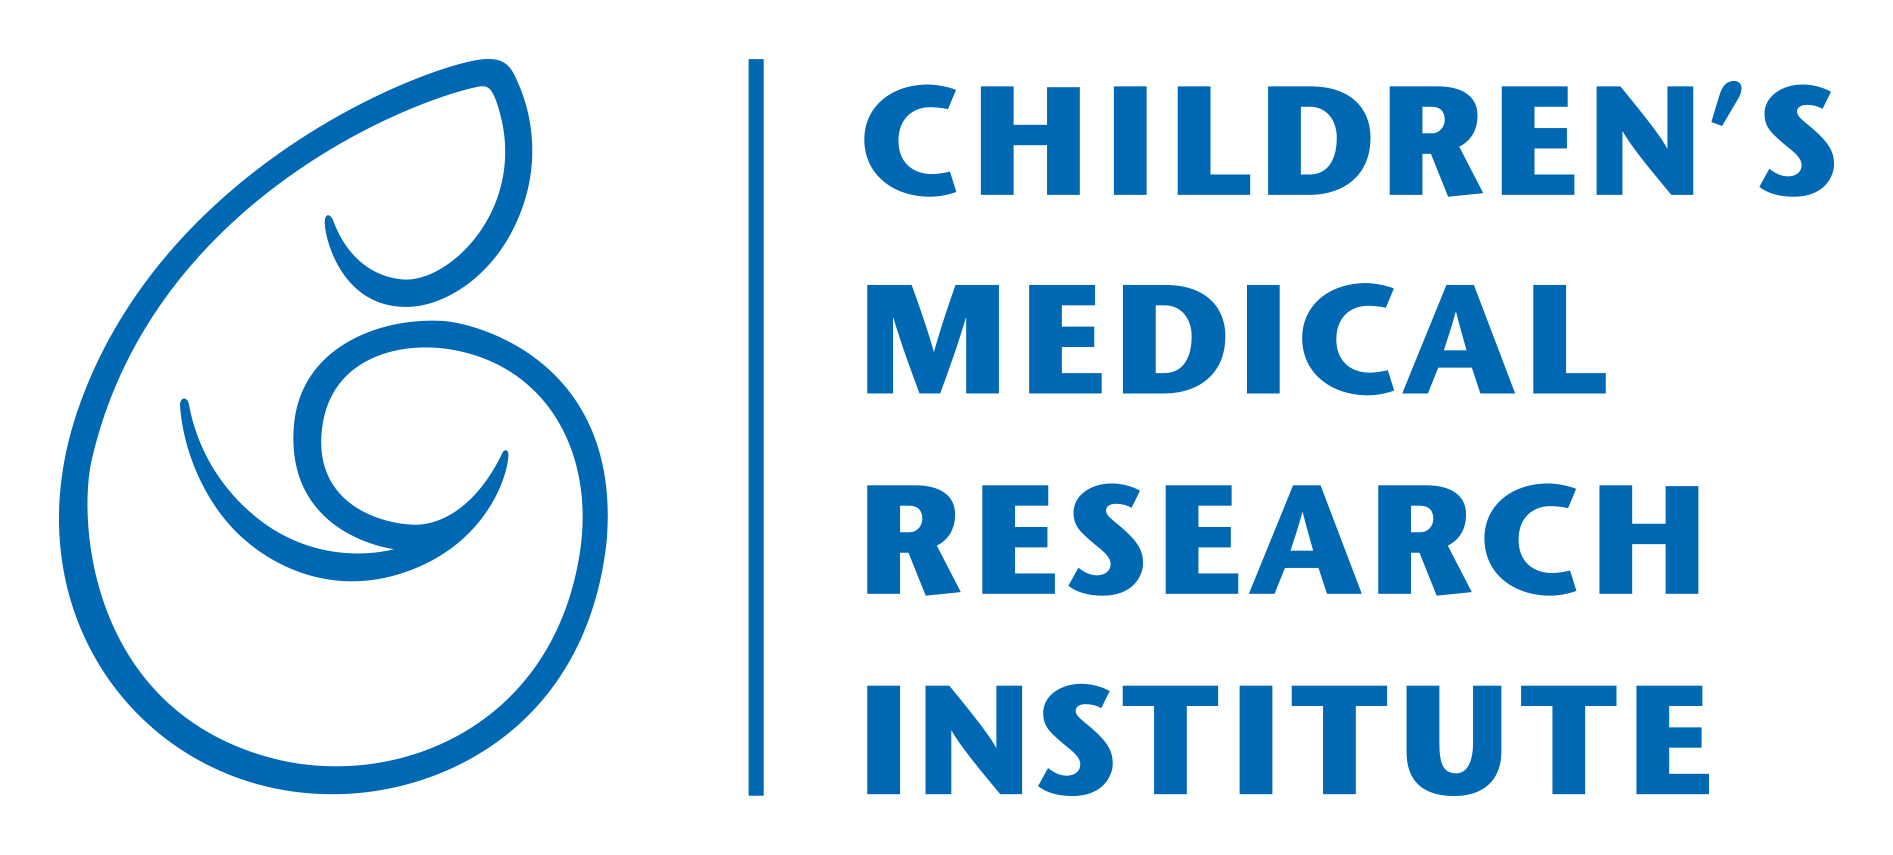 Childrens Medical Research Institute logo